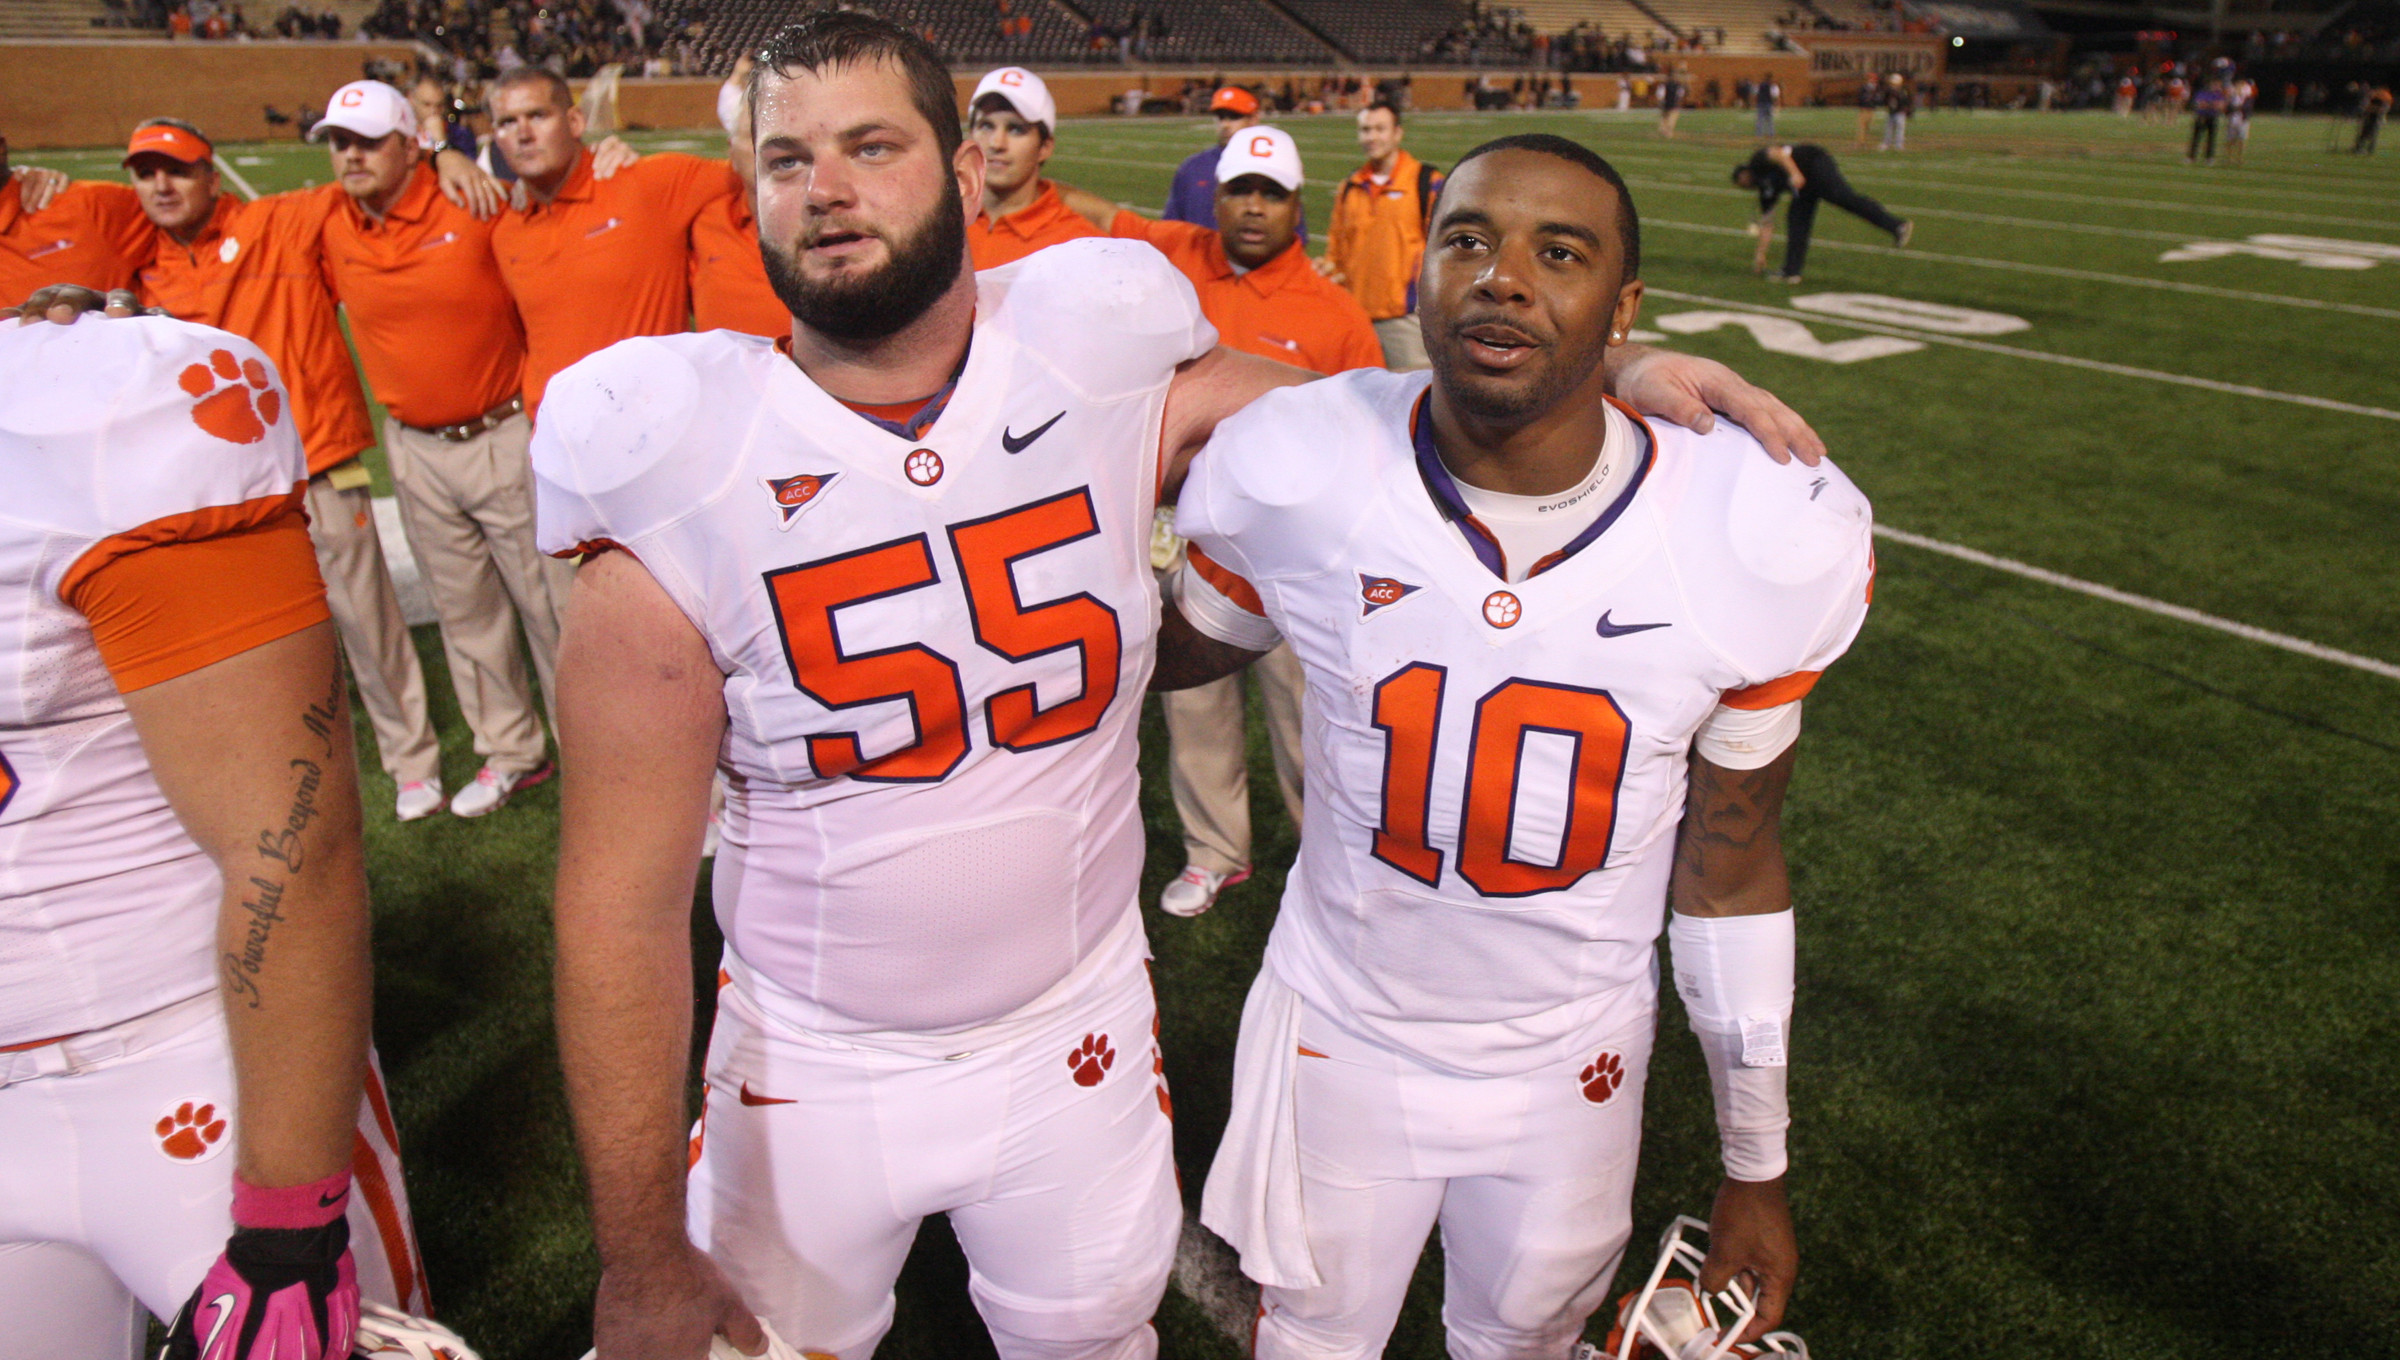 Boyd and Freeman Both Named First-Team All-Americans by AFCA